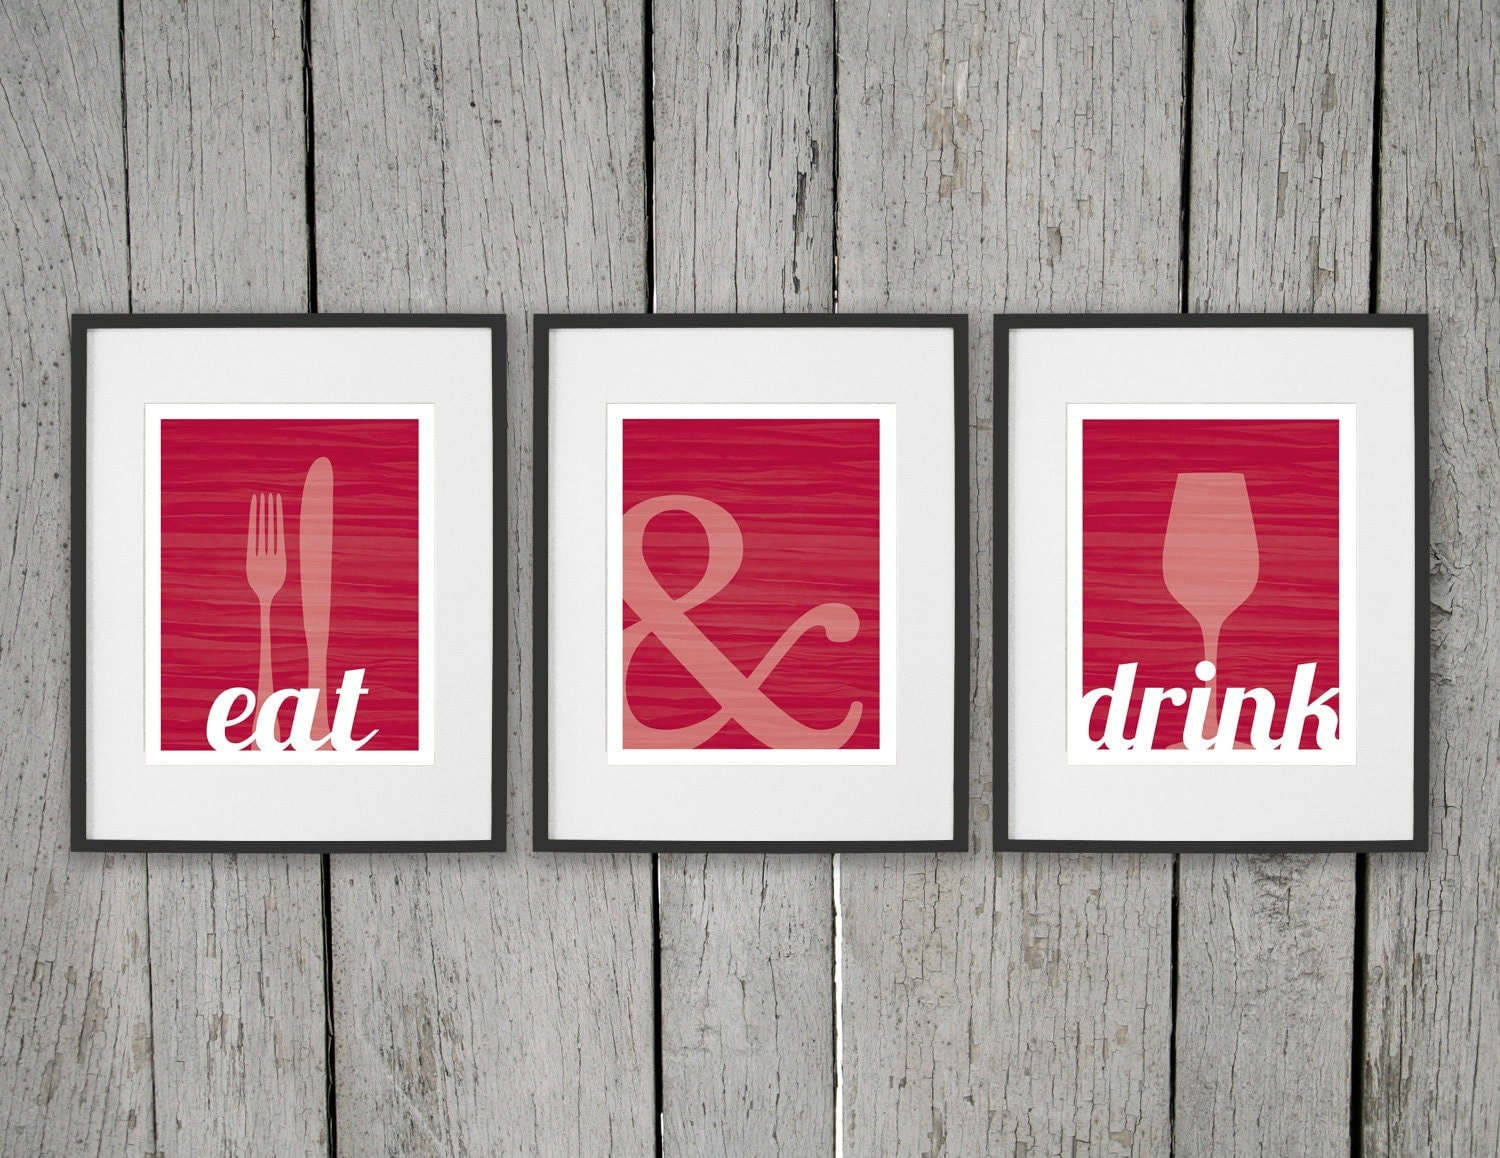 Dining room prints wall art eat drink fork by daphnegraphics for Dining room wall art images